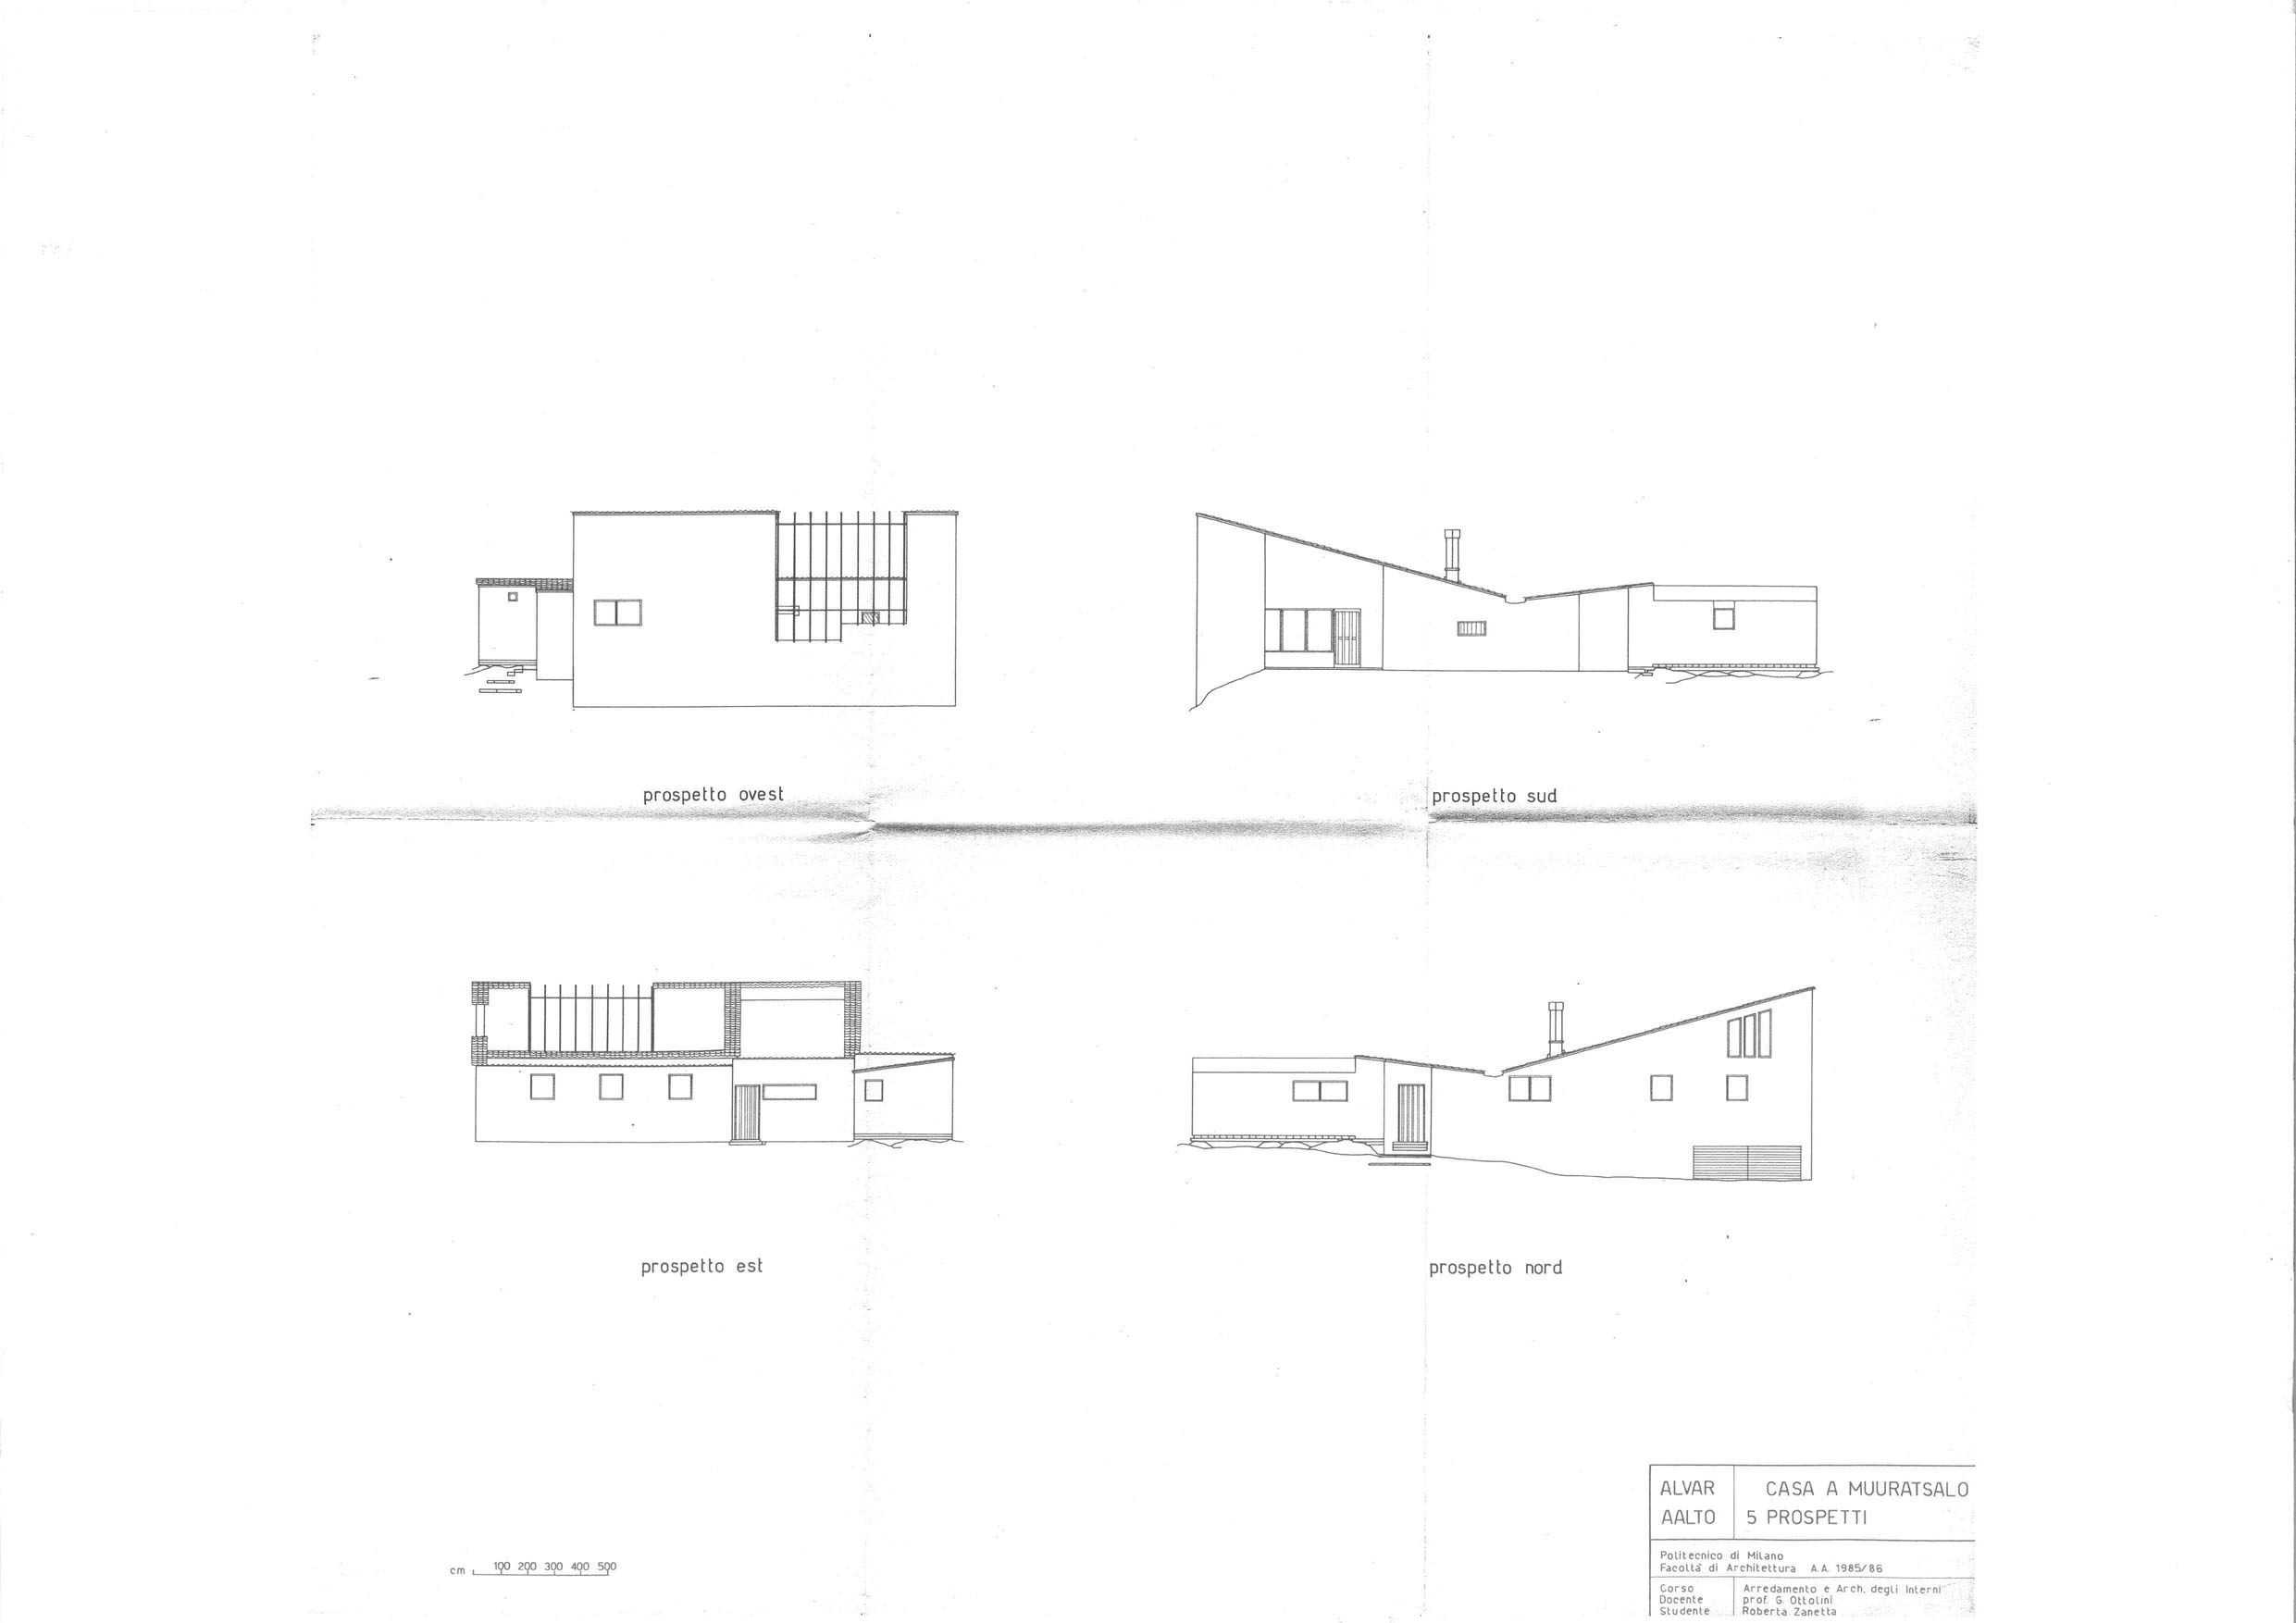 Experimental house alvar aalto plans | House plans